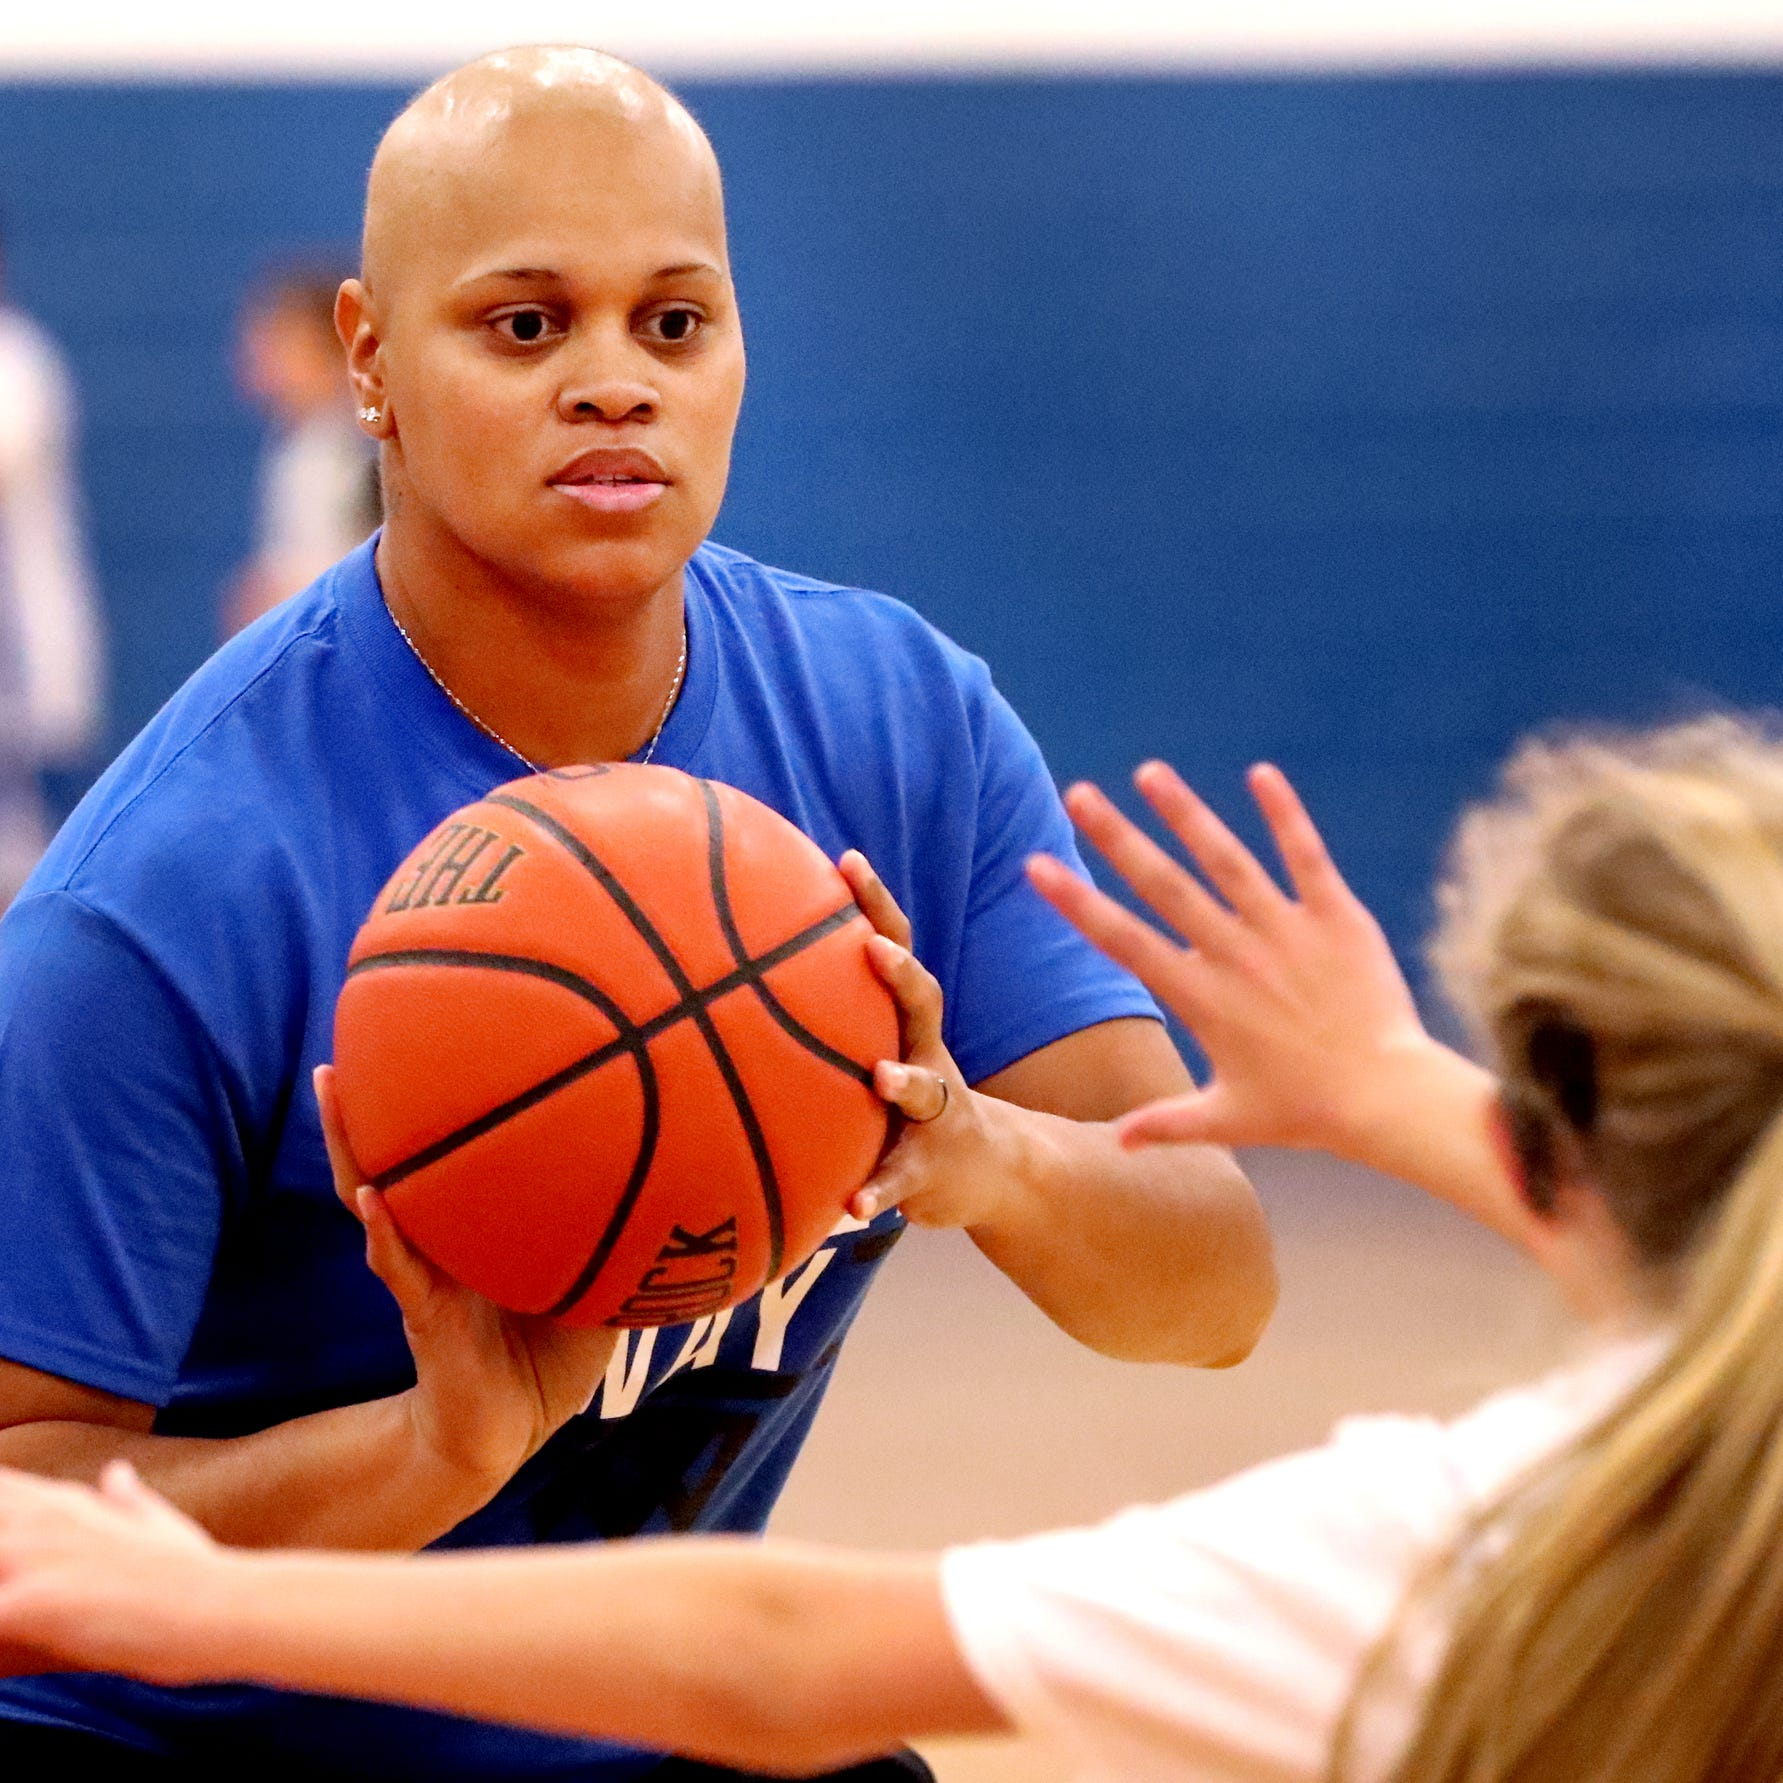 A four-quarter battle: Former MTSU Lady Raider Tia Stovall fighting breast cancer